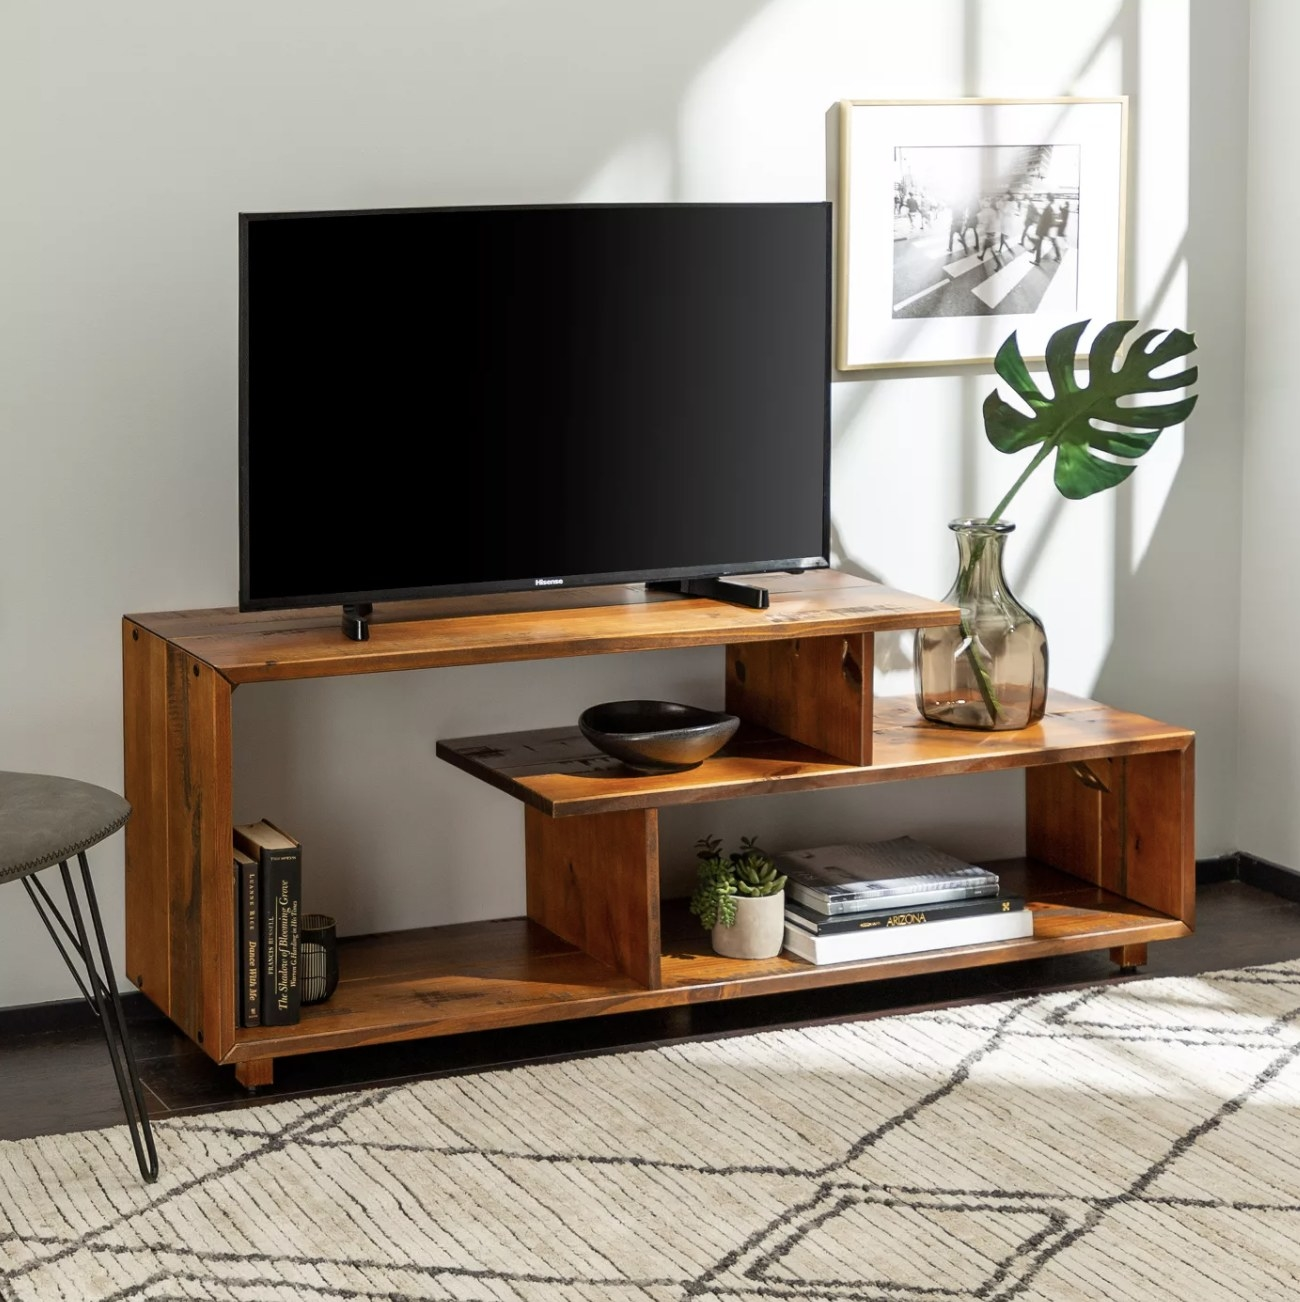 The wood TV stand